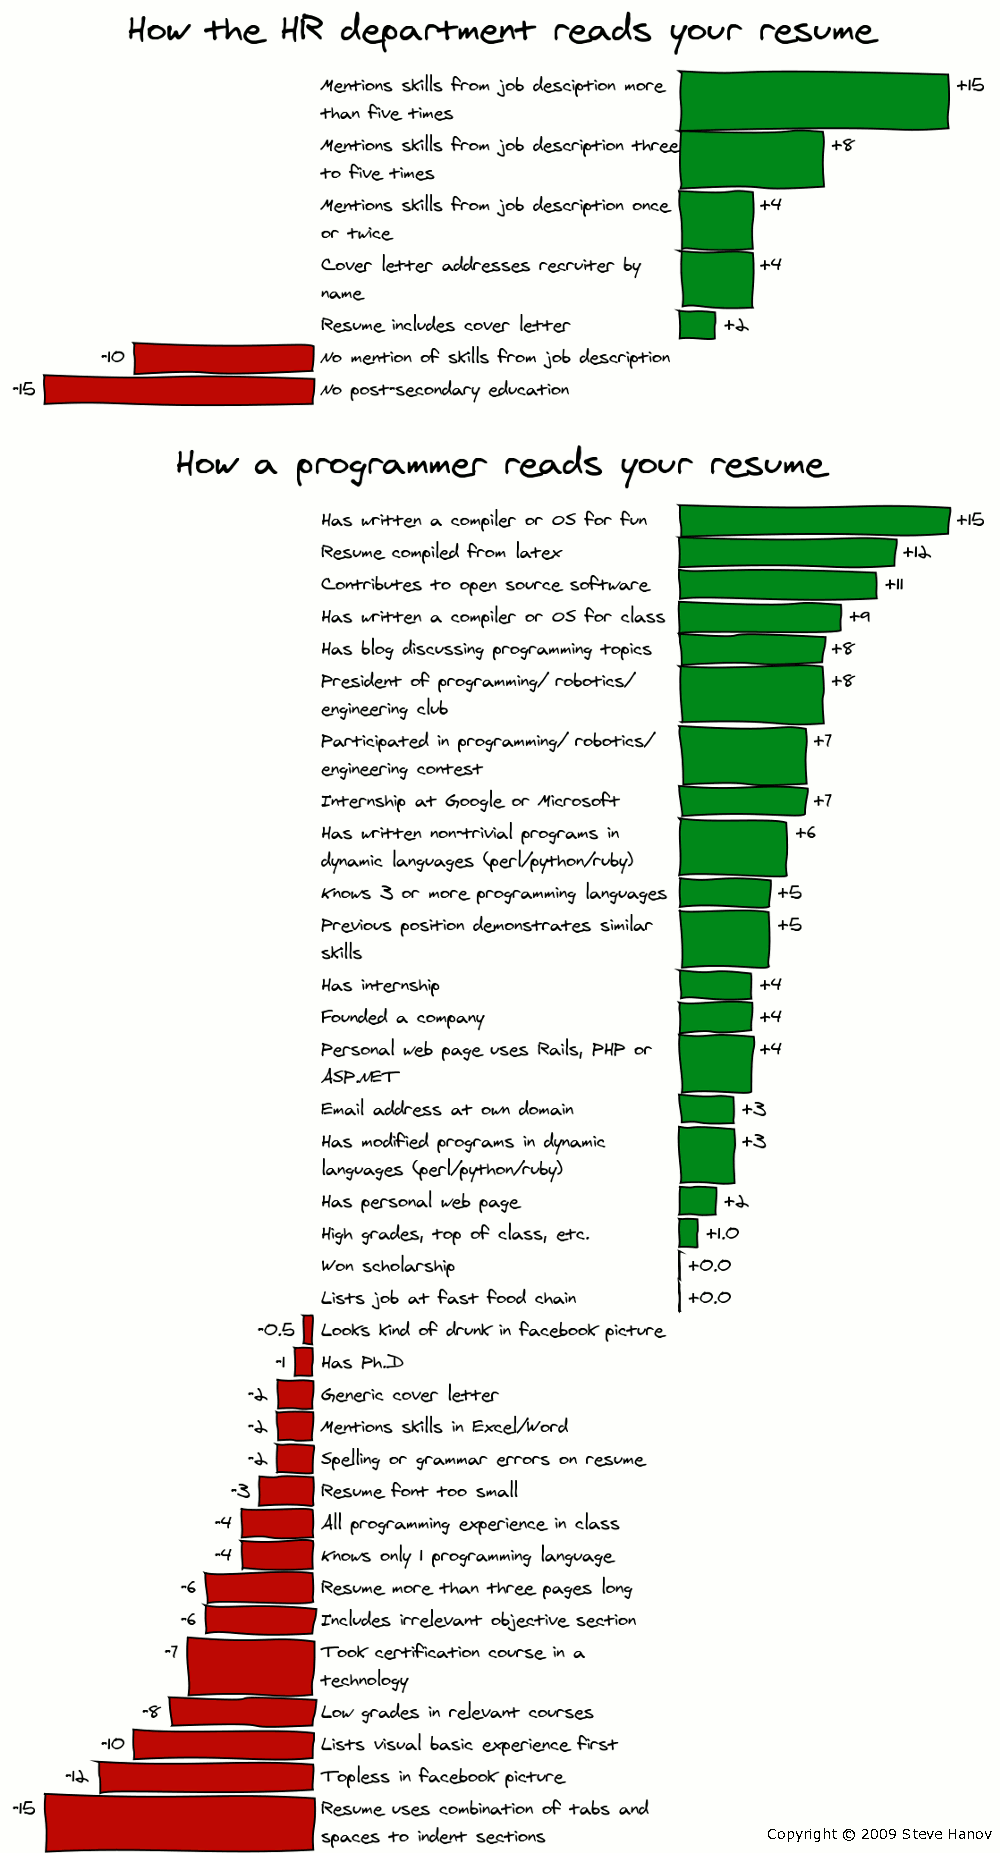 How a programmer reads your resume (comic)